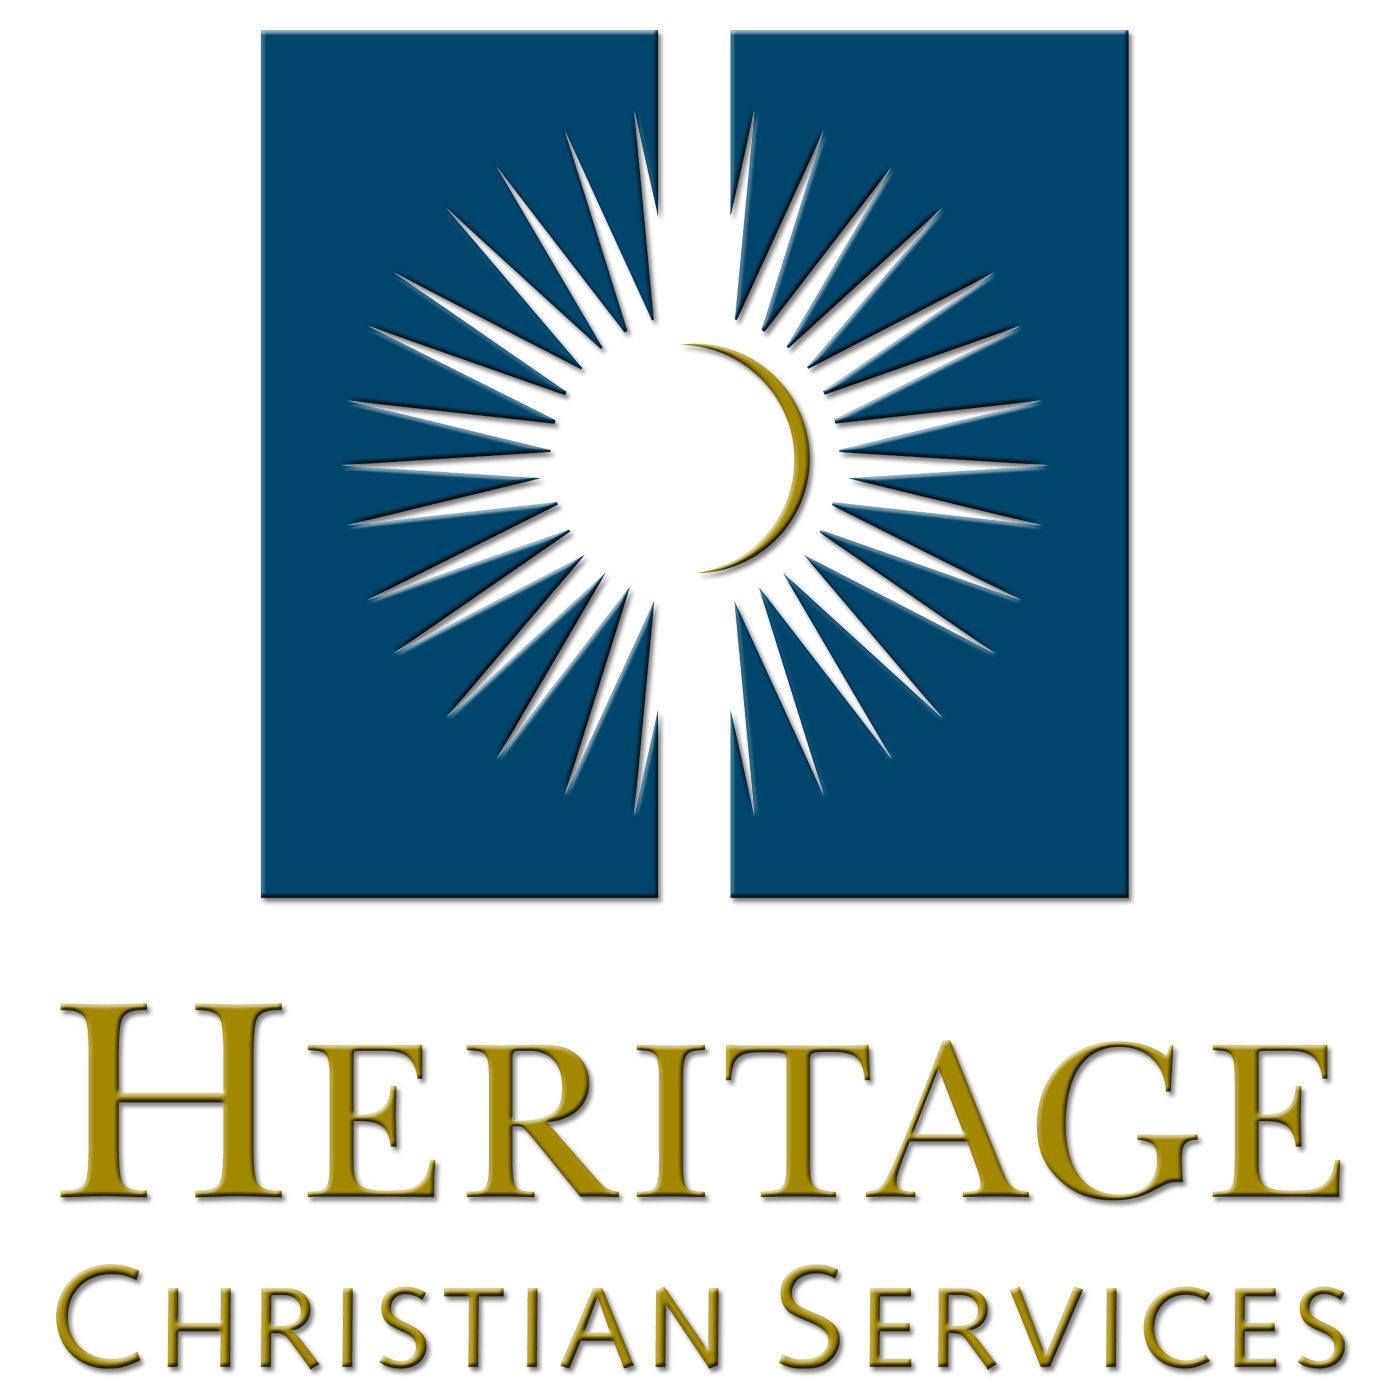 THE PROMISE TO INCLUDE - Jobs at Heritage Christian Services